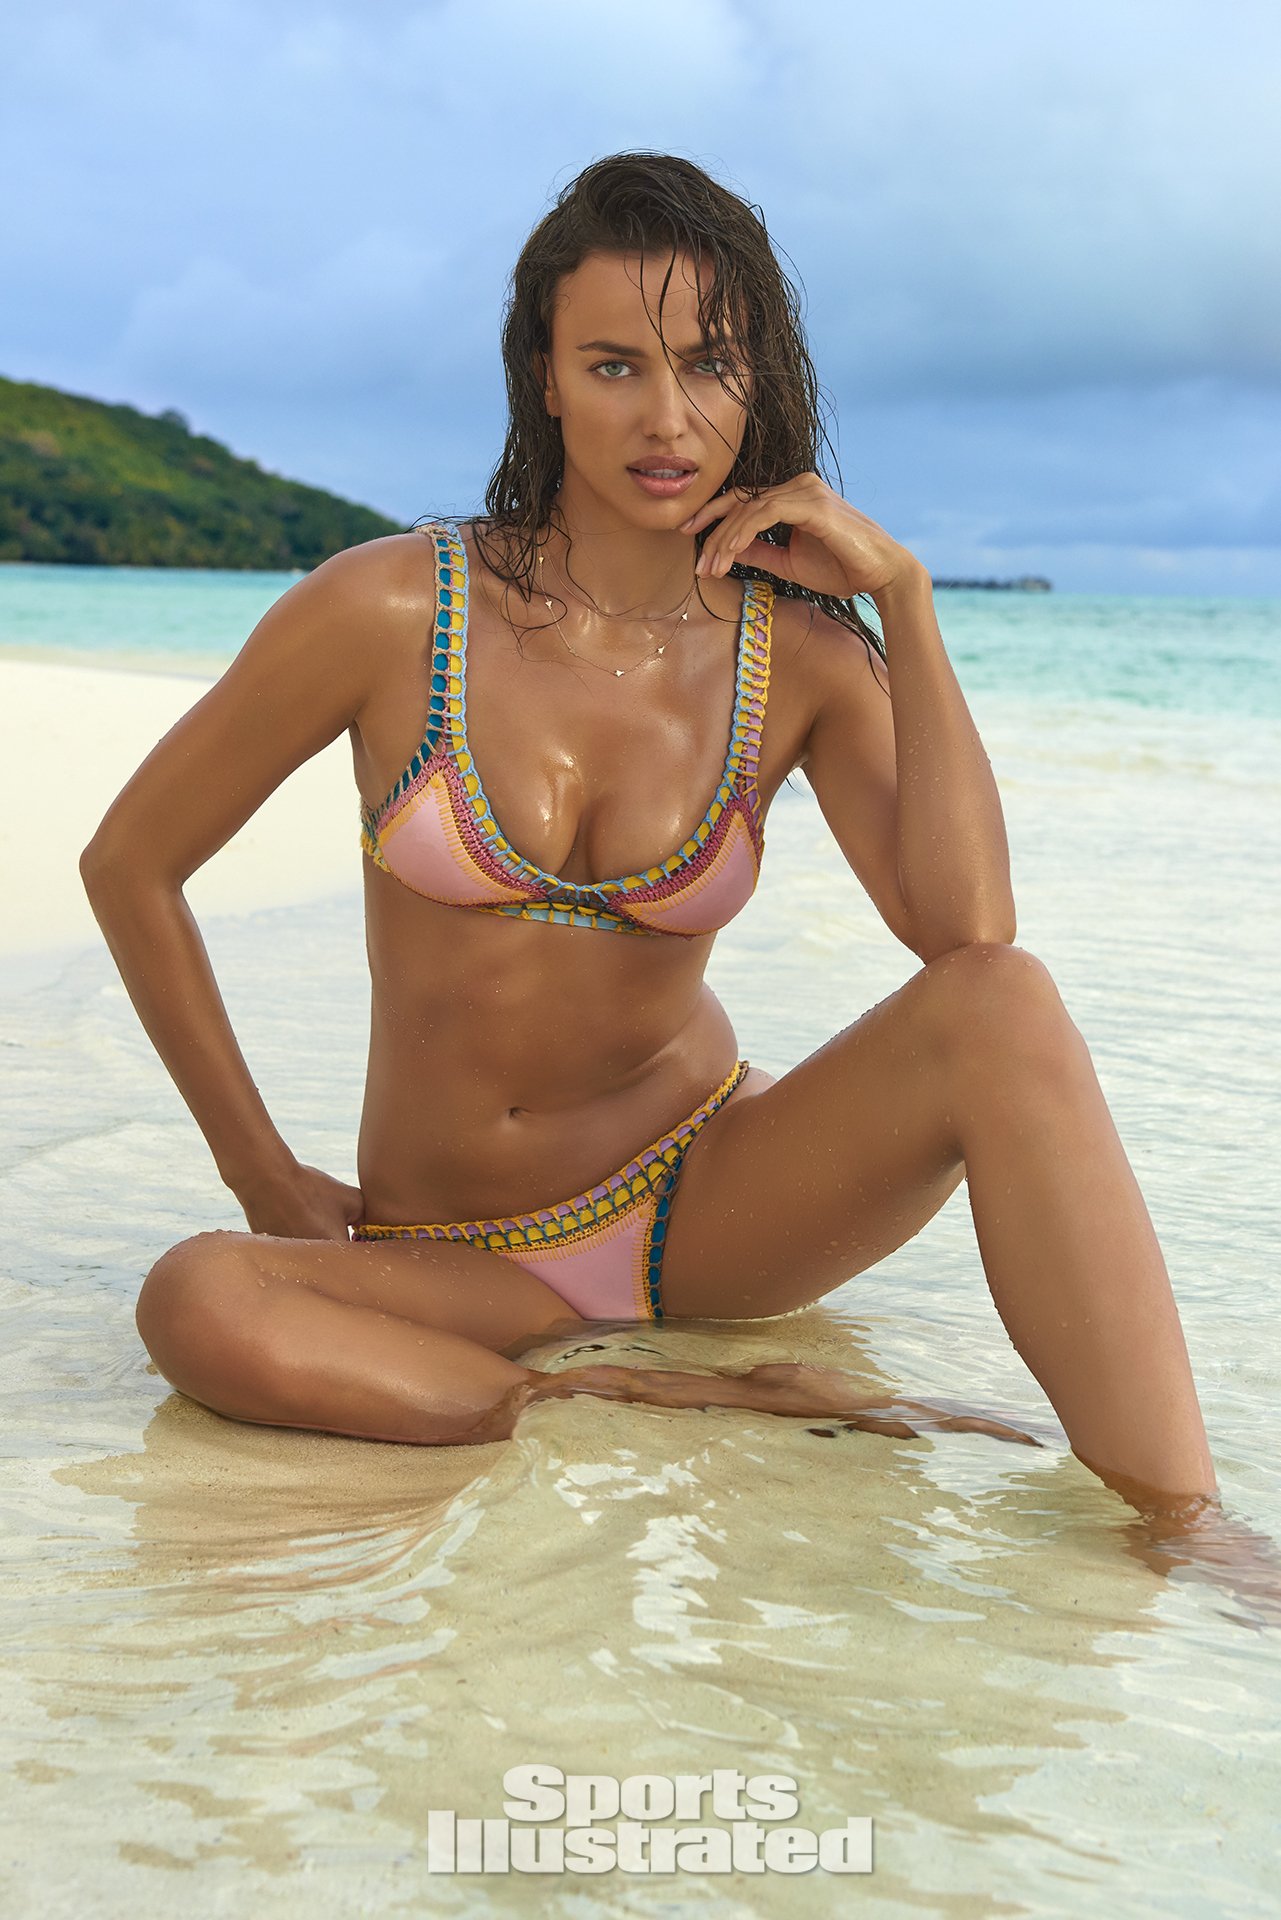 Irina Shayk La Senza Lingerie 2011: Irina Shayk 2016 Swimsuit Photo Gallery